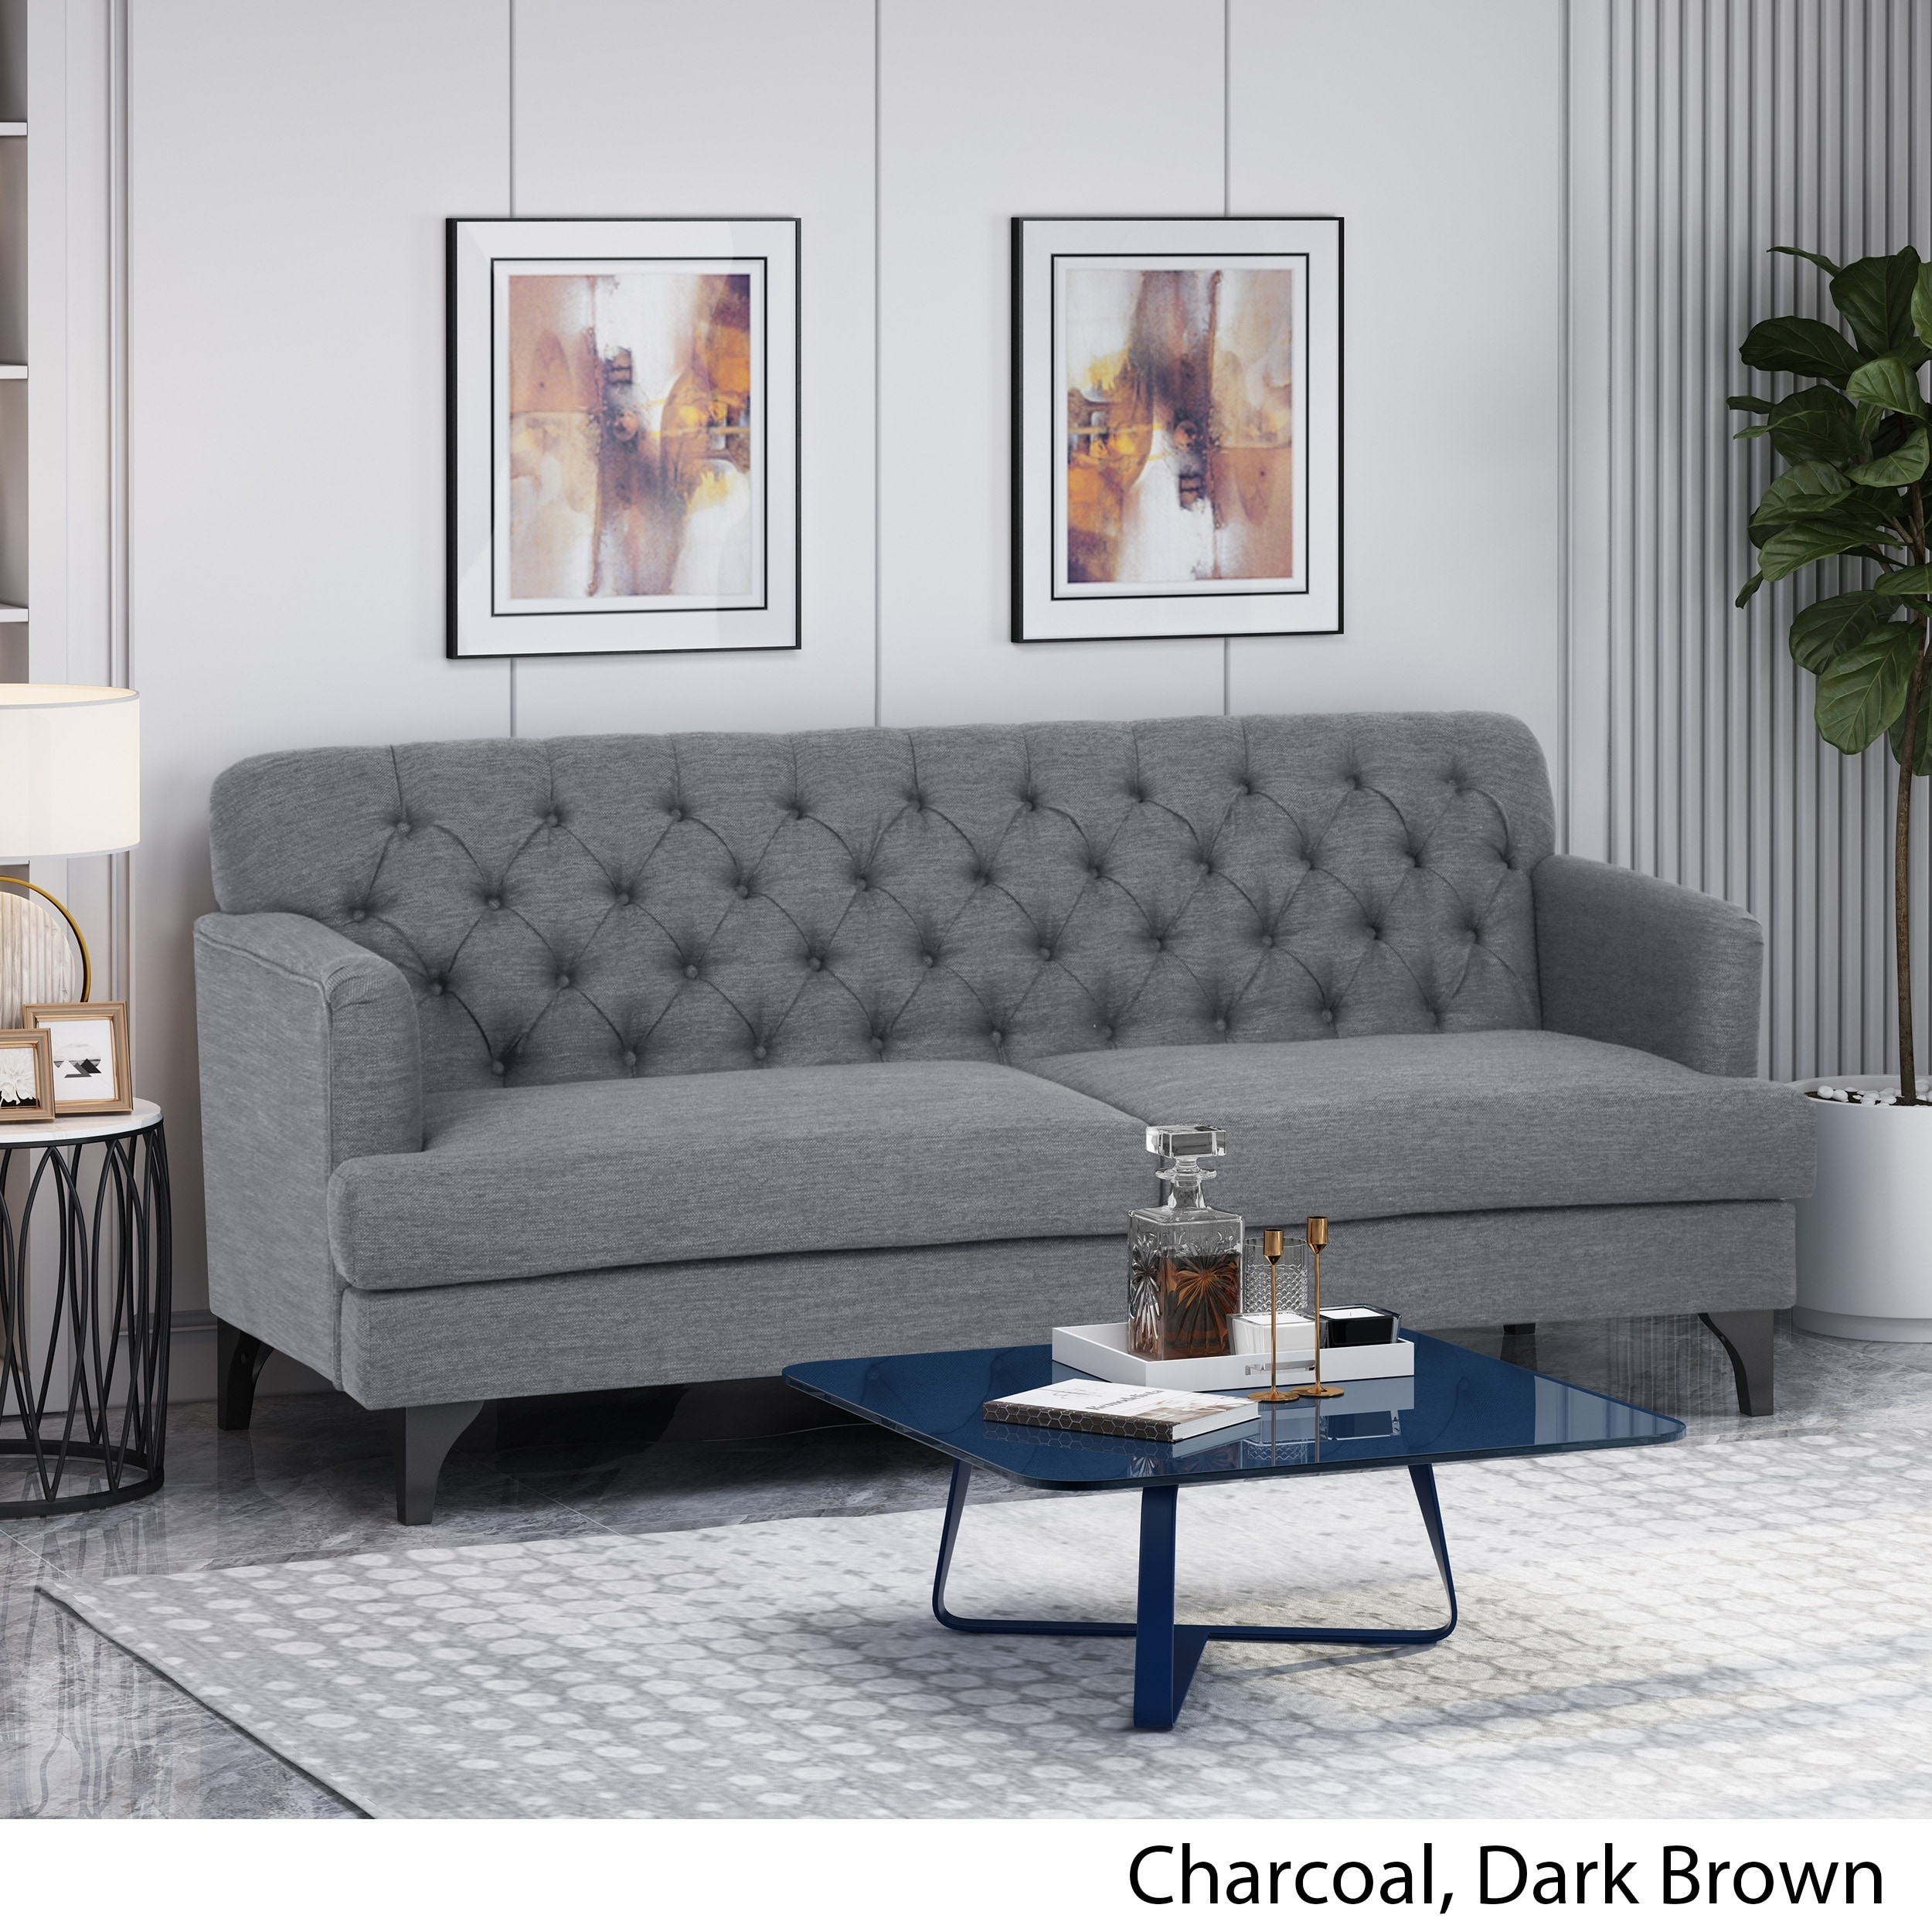 """Postwick Contemporary Tufted Fabric 3 Seater Sofa By Christopher Knight Home - 78.00"""" W X 35.00"""" L X 34.50"""" H - On Sale - Overstock - 30396319"""